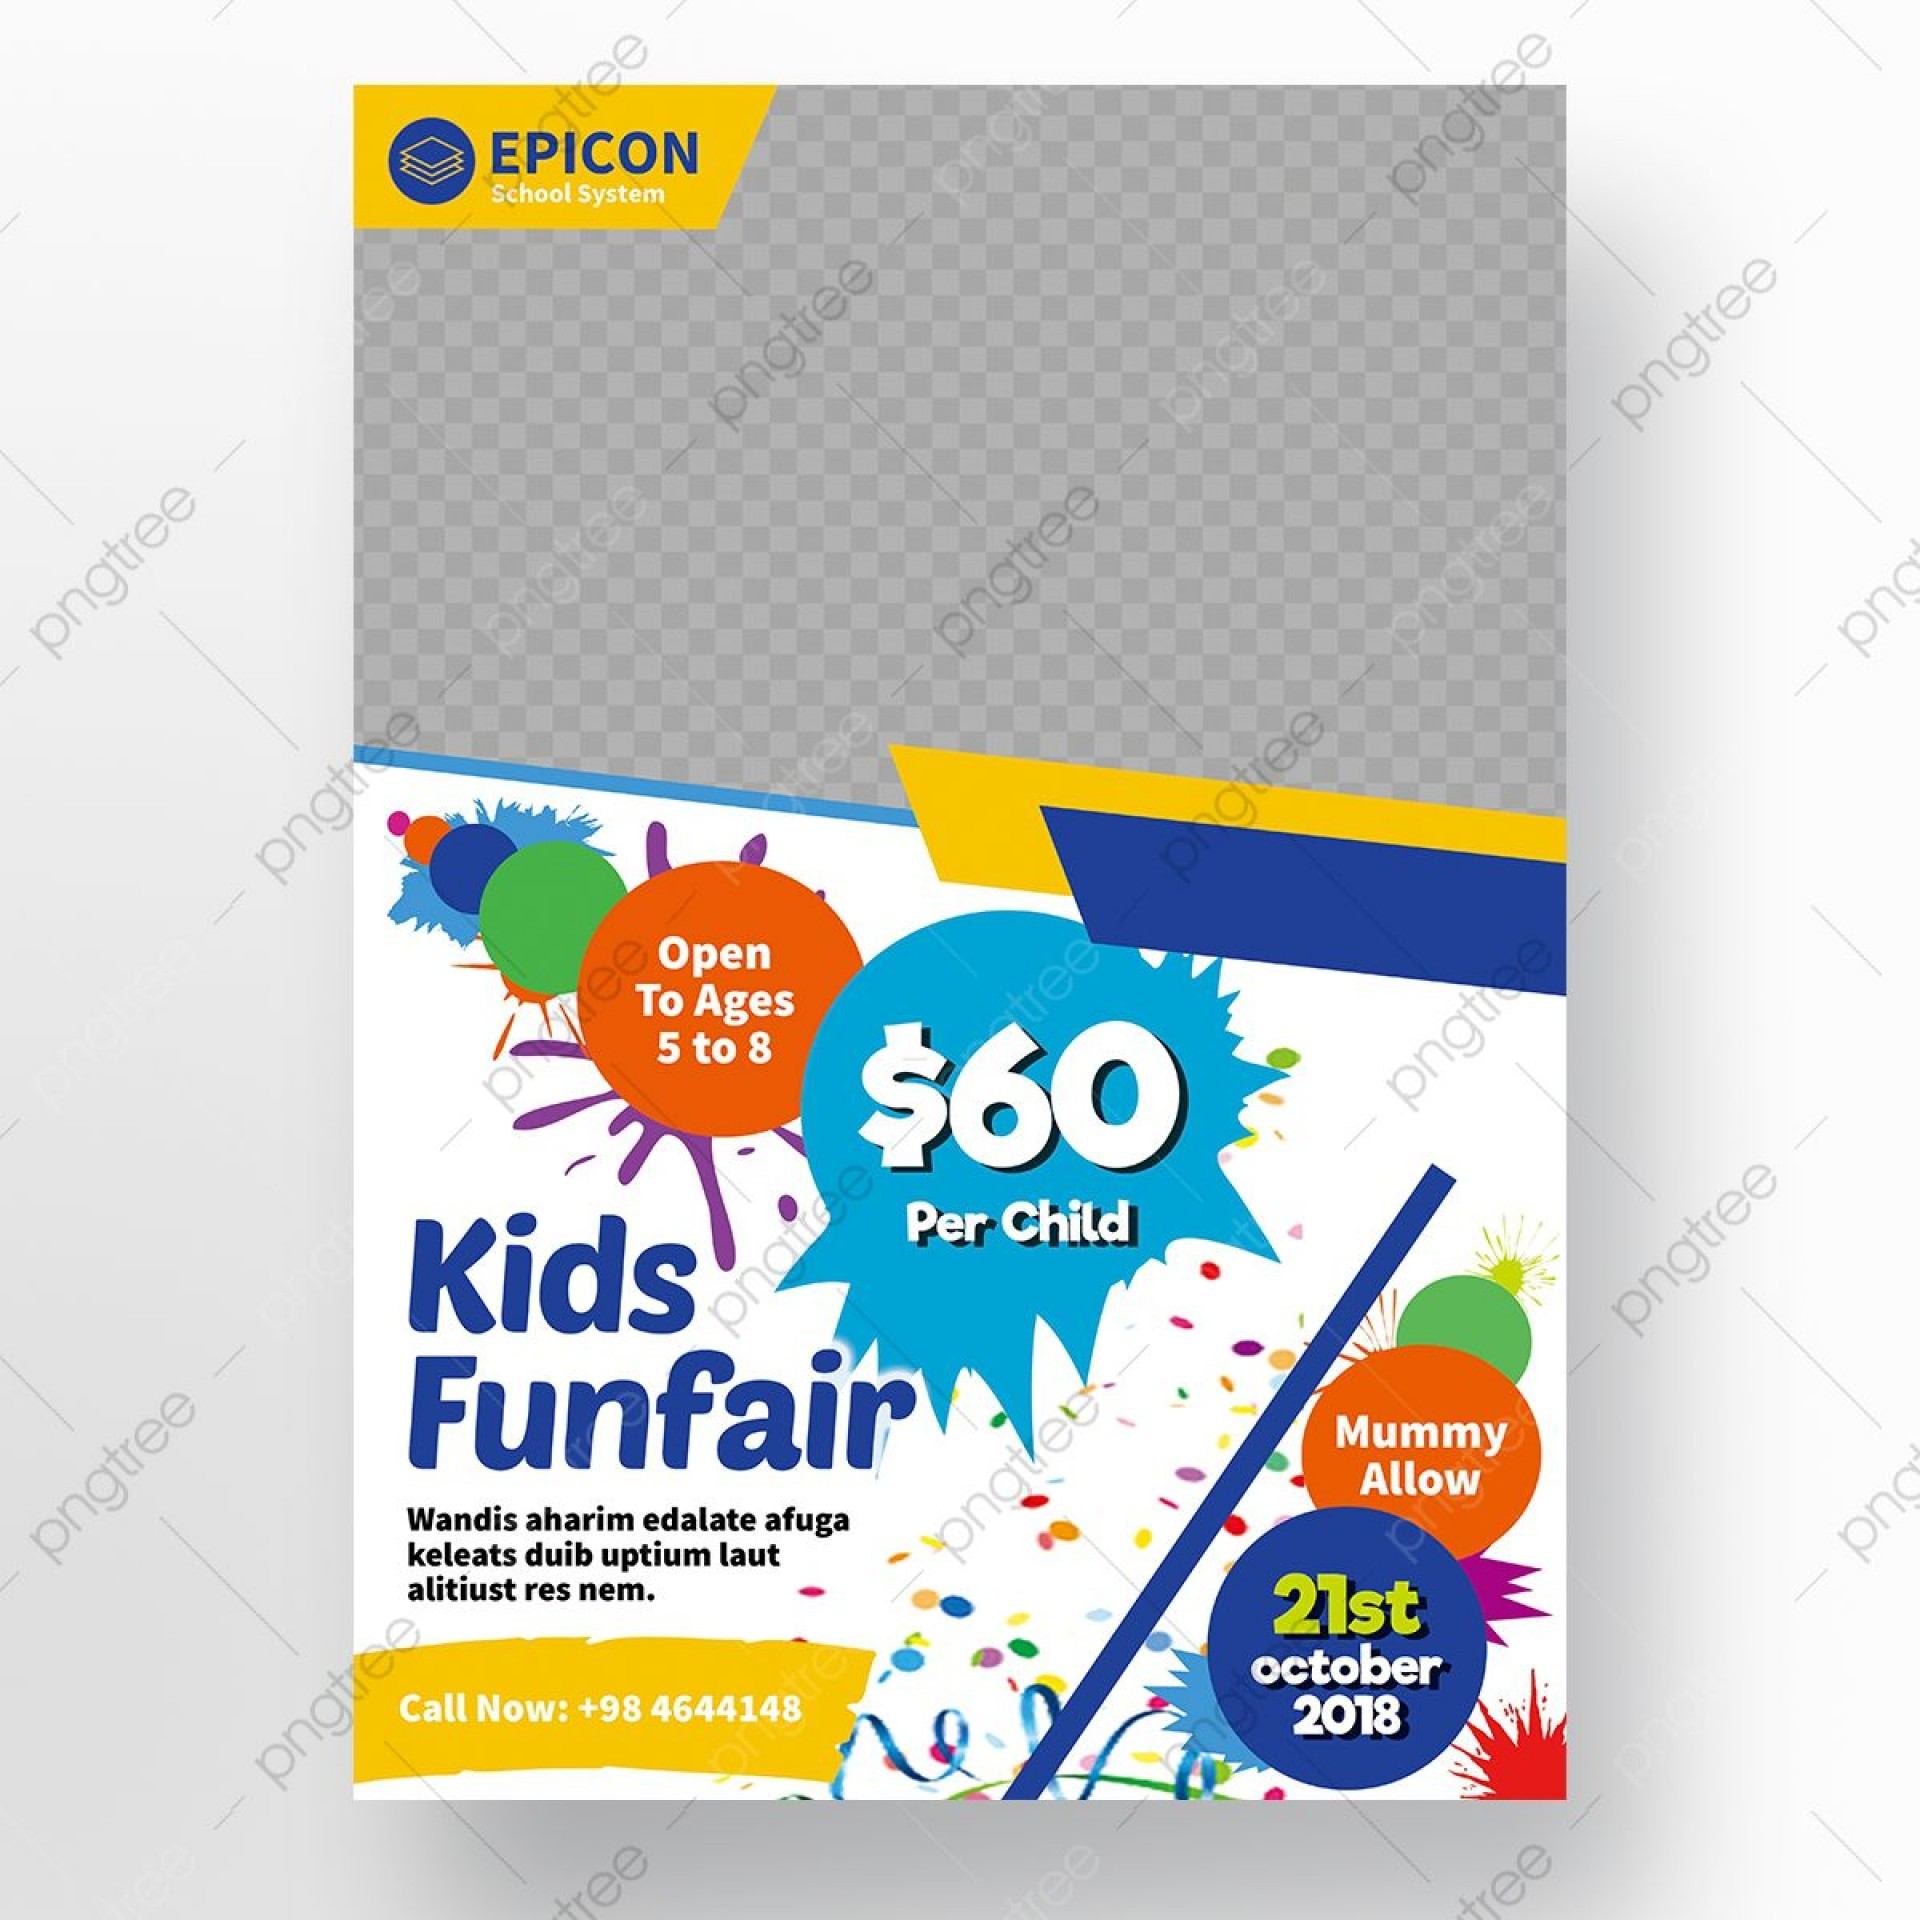 008 Unforgettable Free After School Flyer Template High Definition  Templates1920